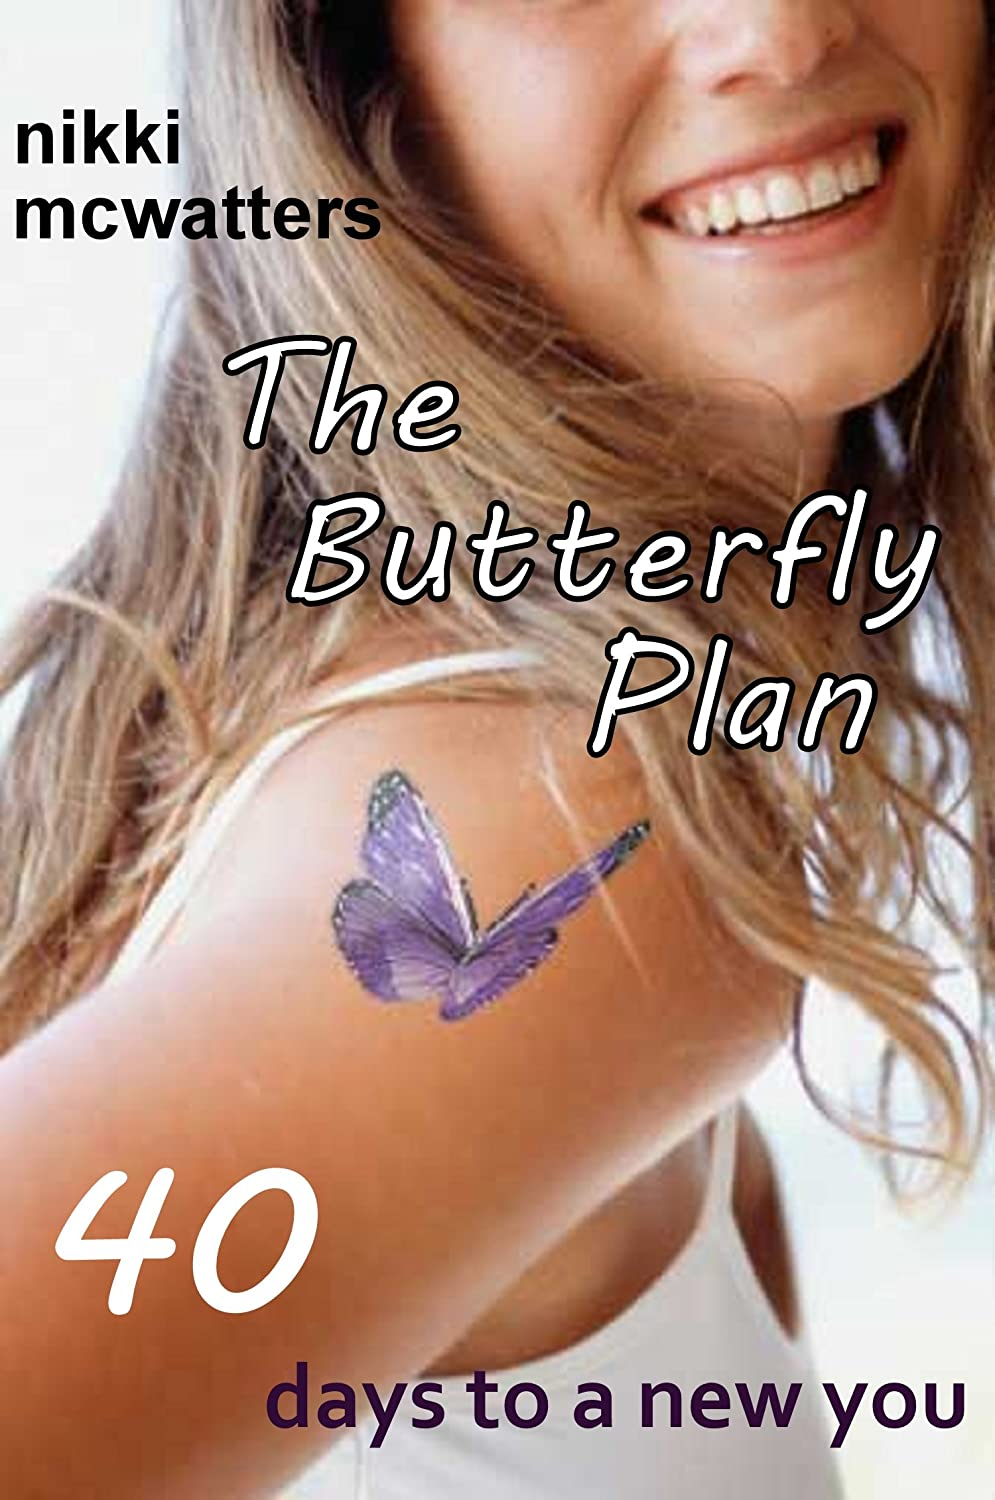 Buy The Butterfly Plan!